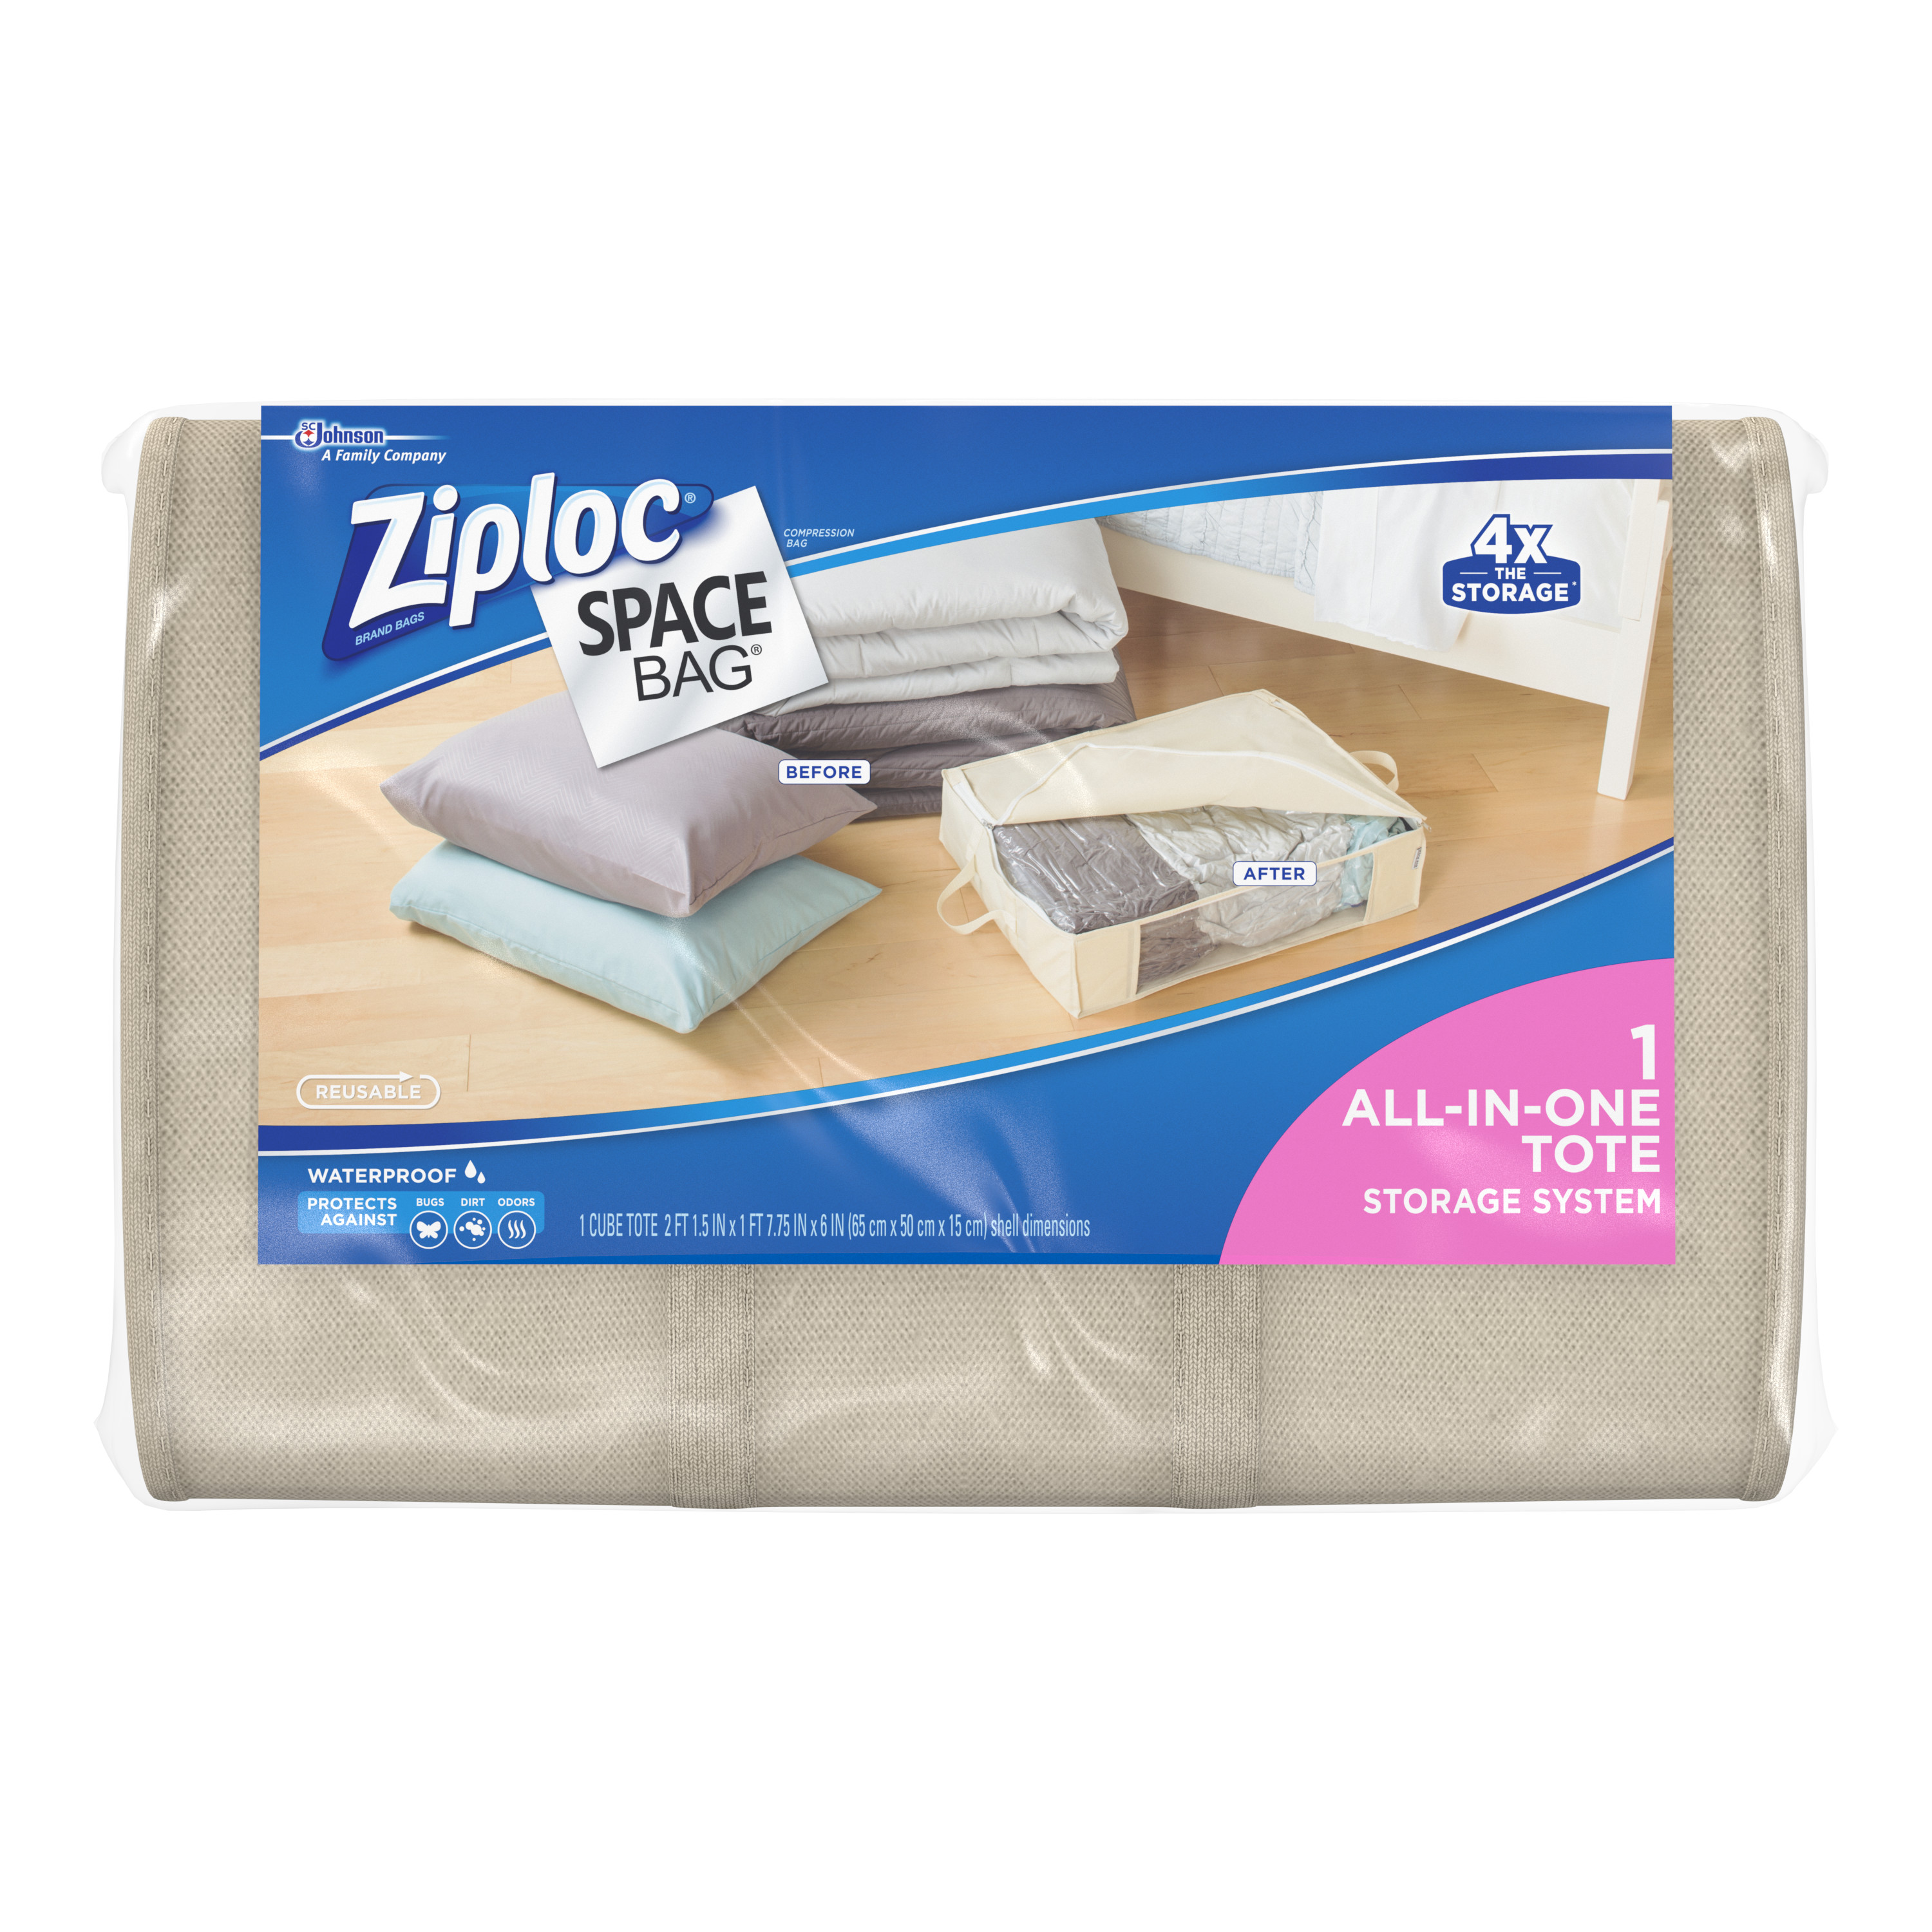 Ziploc Space Bag Underbed Tote